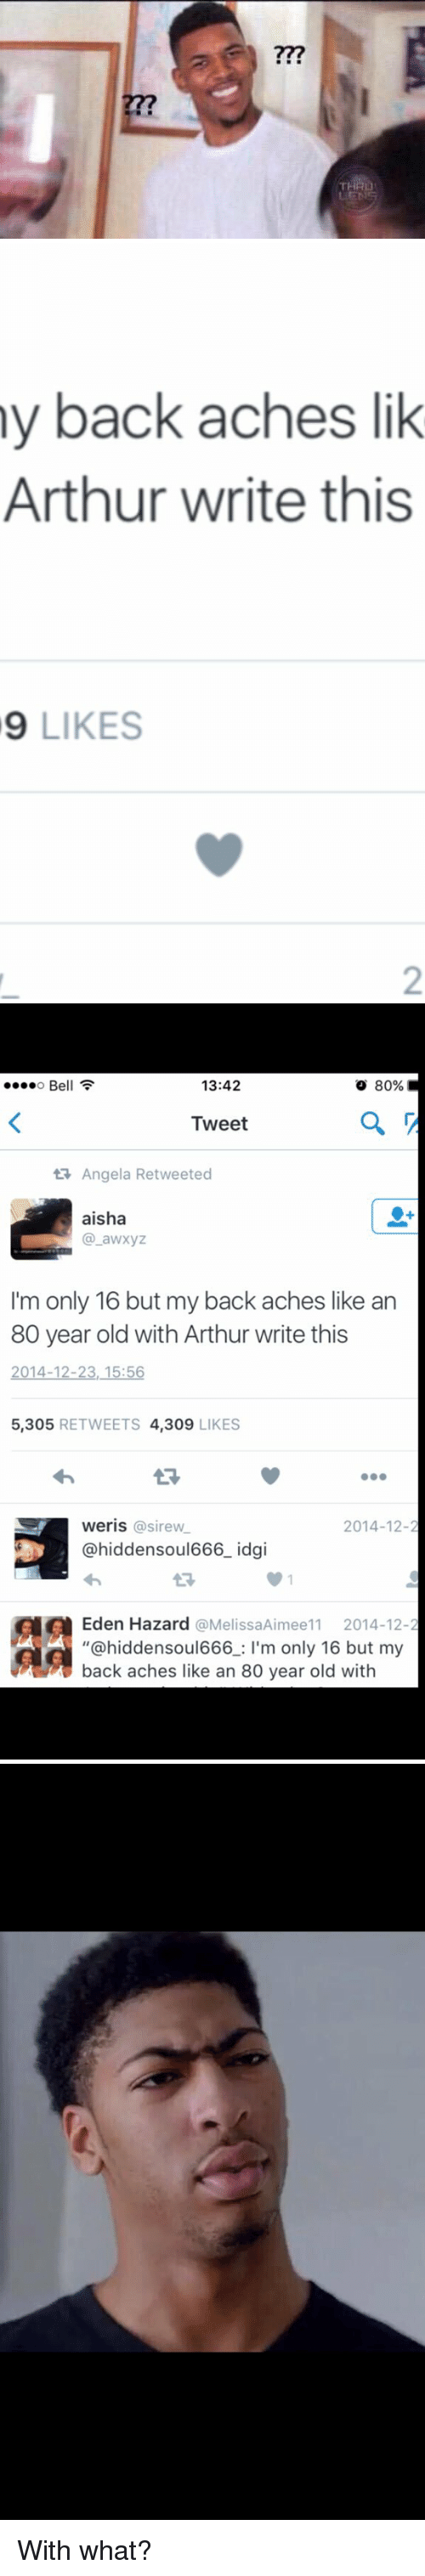 "Arthur, Blackpeopletwitter, and Old: R   y back aches lik  Arthur write this  9 LIKES   ....o Be  13:42  80%  Tweet  Angela Retweeted  aisha  I'm only 16 but my back aches like an  80 year old with Arthur write this  2014-12-23, 15:56  5,305  RETWEETS 4,309  LIKES  WeriS  asirew  2014-12-2  hidden soul666 idgi  Eden Hazard @Melissa Aimee11 2014-12  ""@hidden soul666  m only 16 but my  back aches like an 80 year old with With what?"